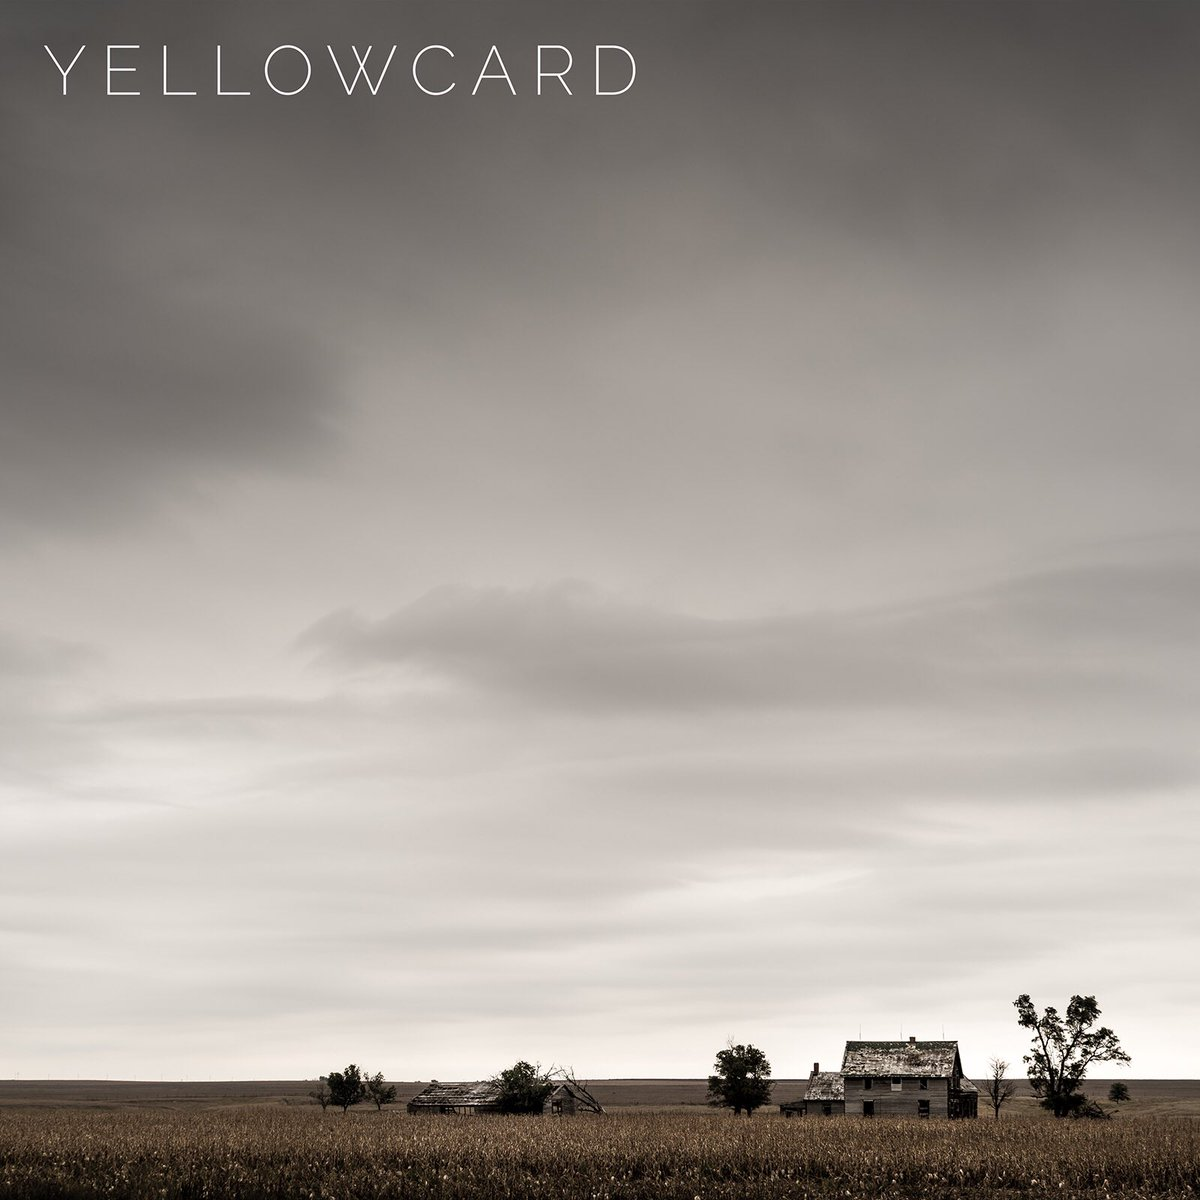 9/30/16 Yellowcard - Yellowcard @hopelessrecords https://t.co/tLpu806Gh5